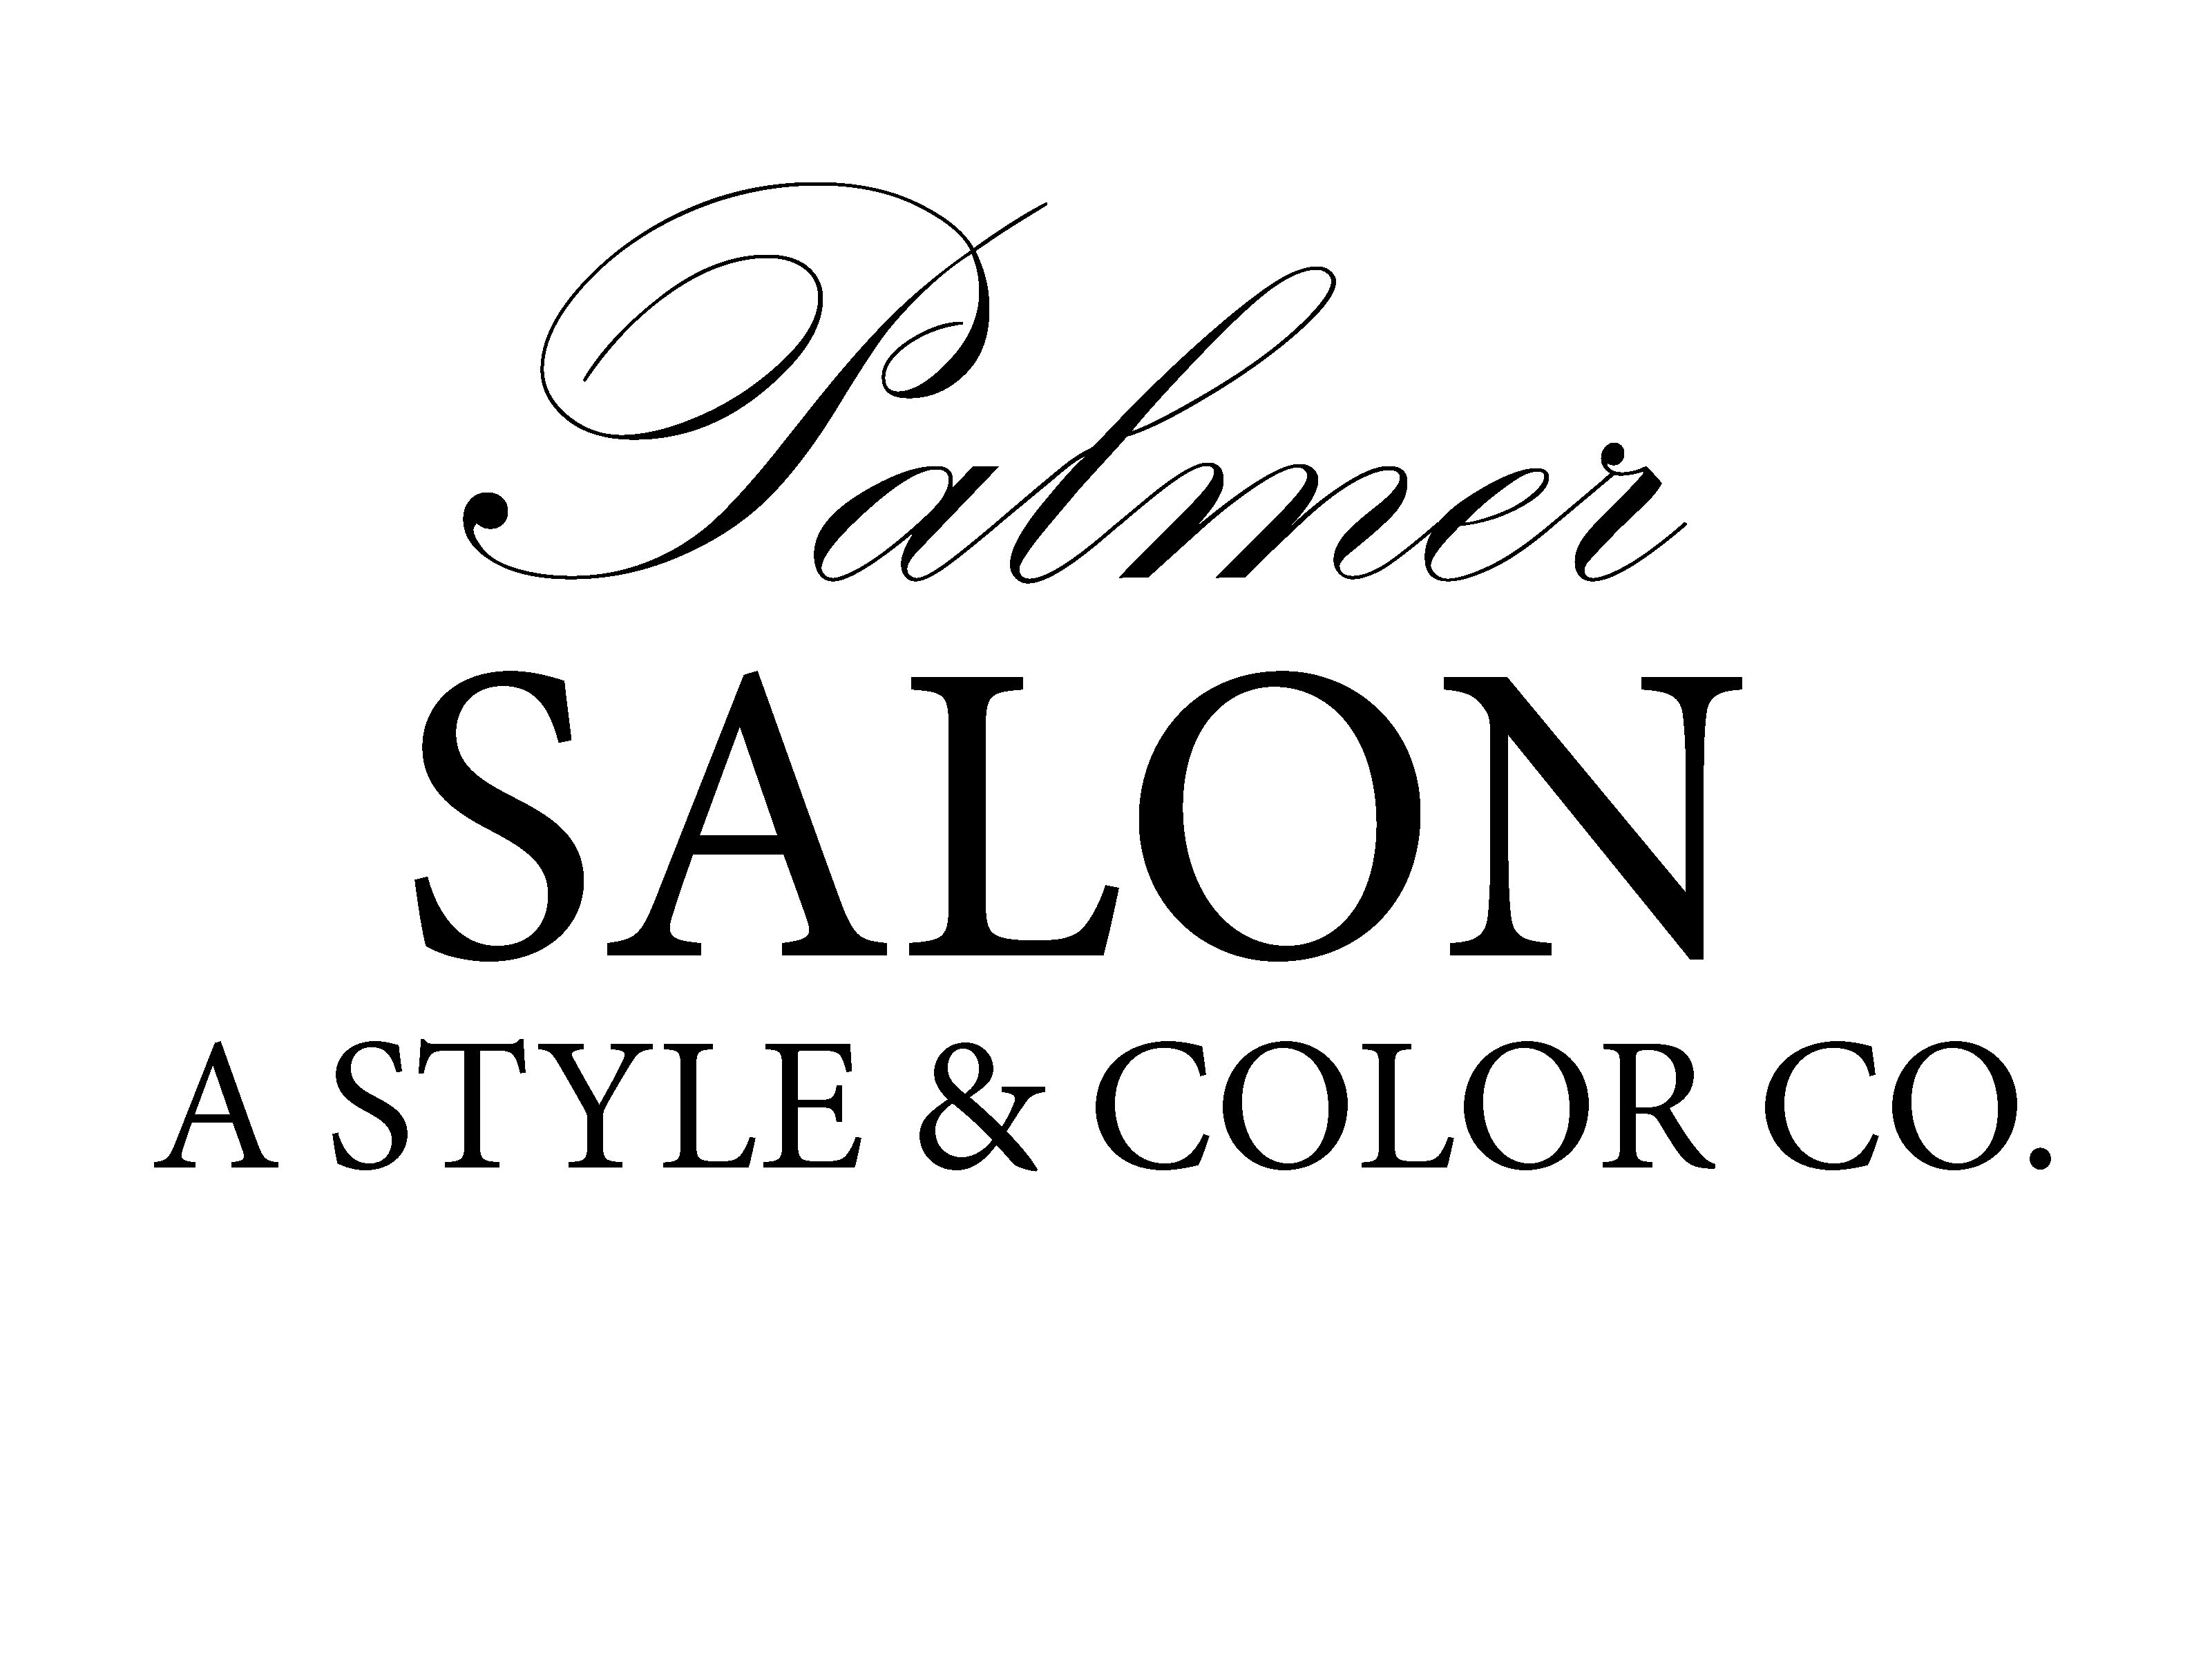 PALMER SALON A STYLE & COLOR CO.